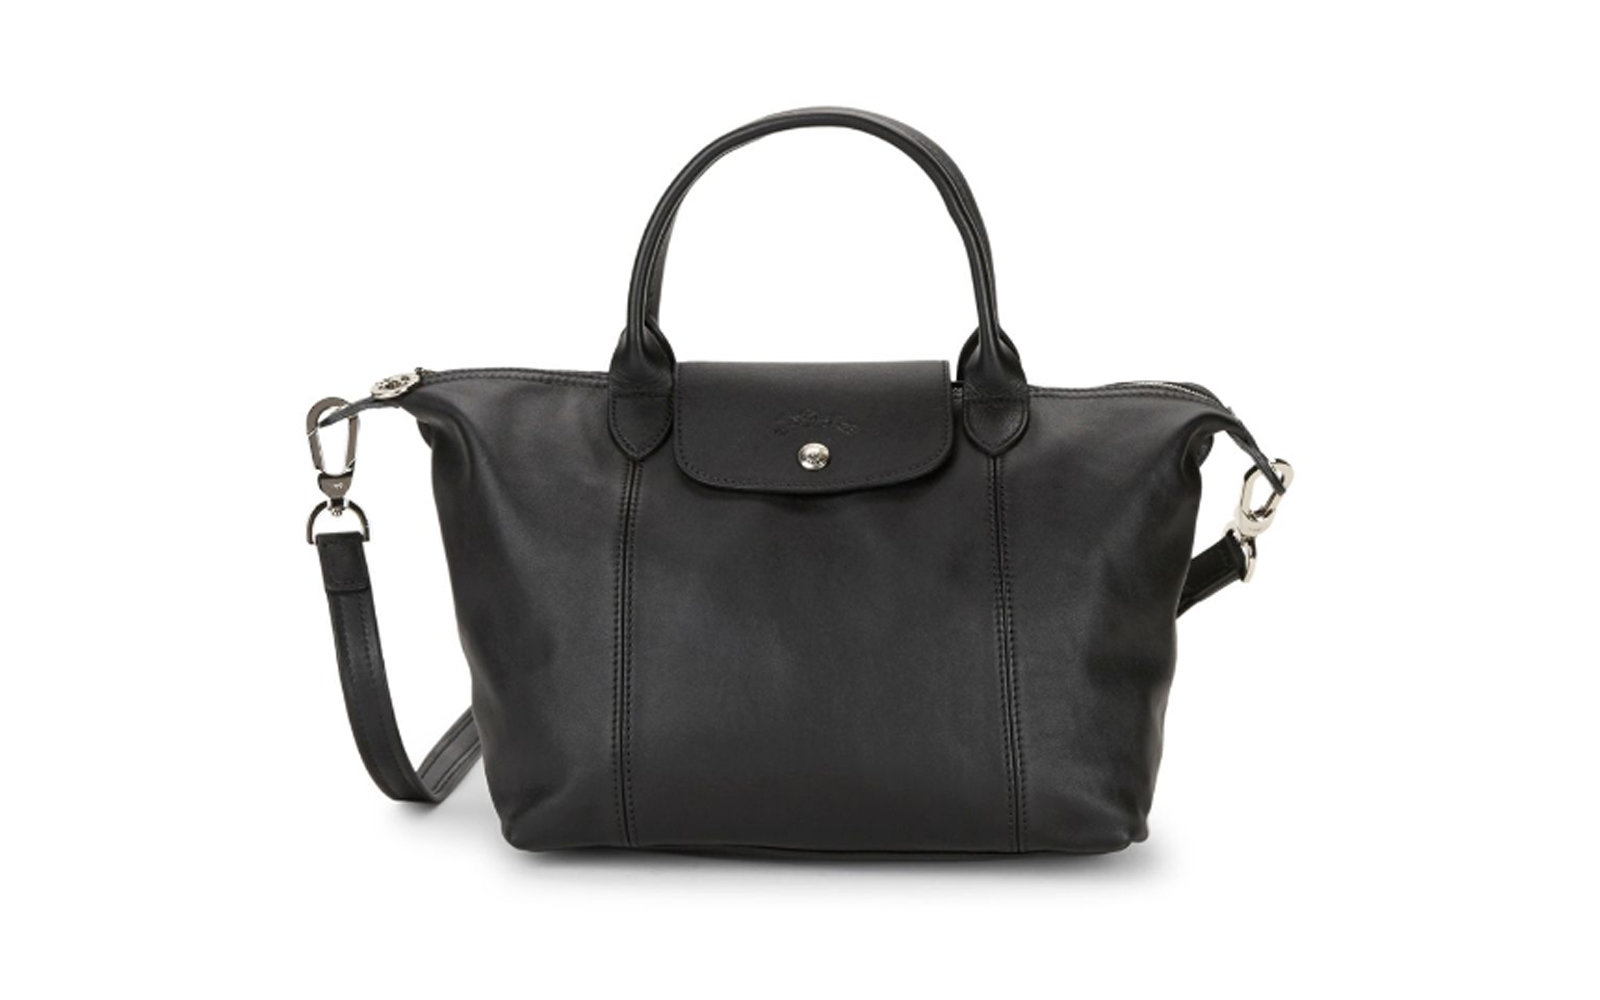 Longchamp Le Pliage Cuir Leather Top Handle Bag in Black